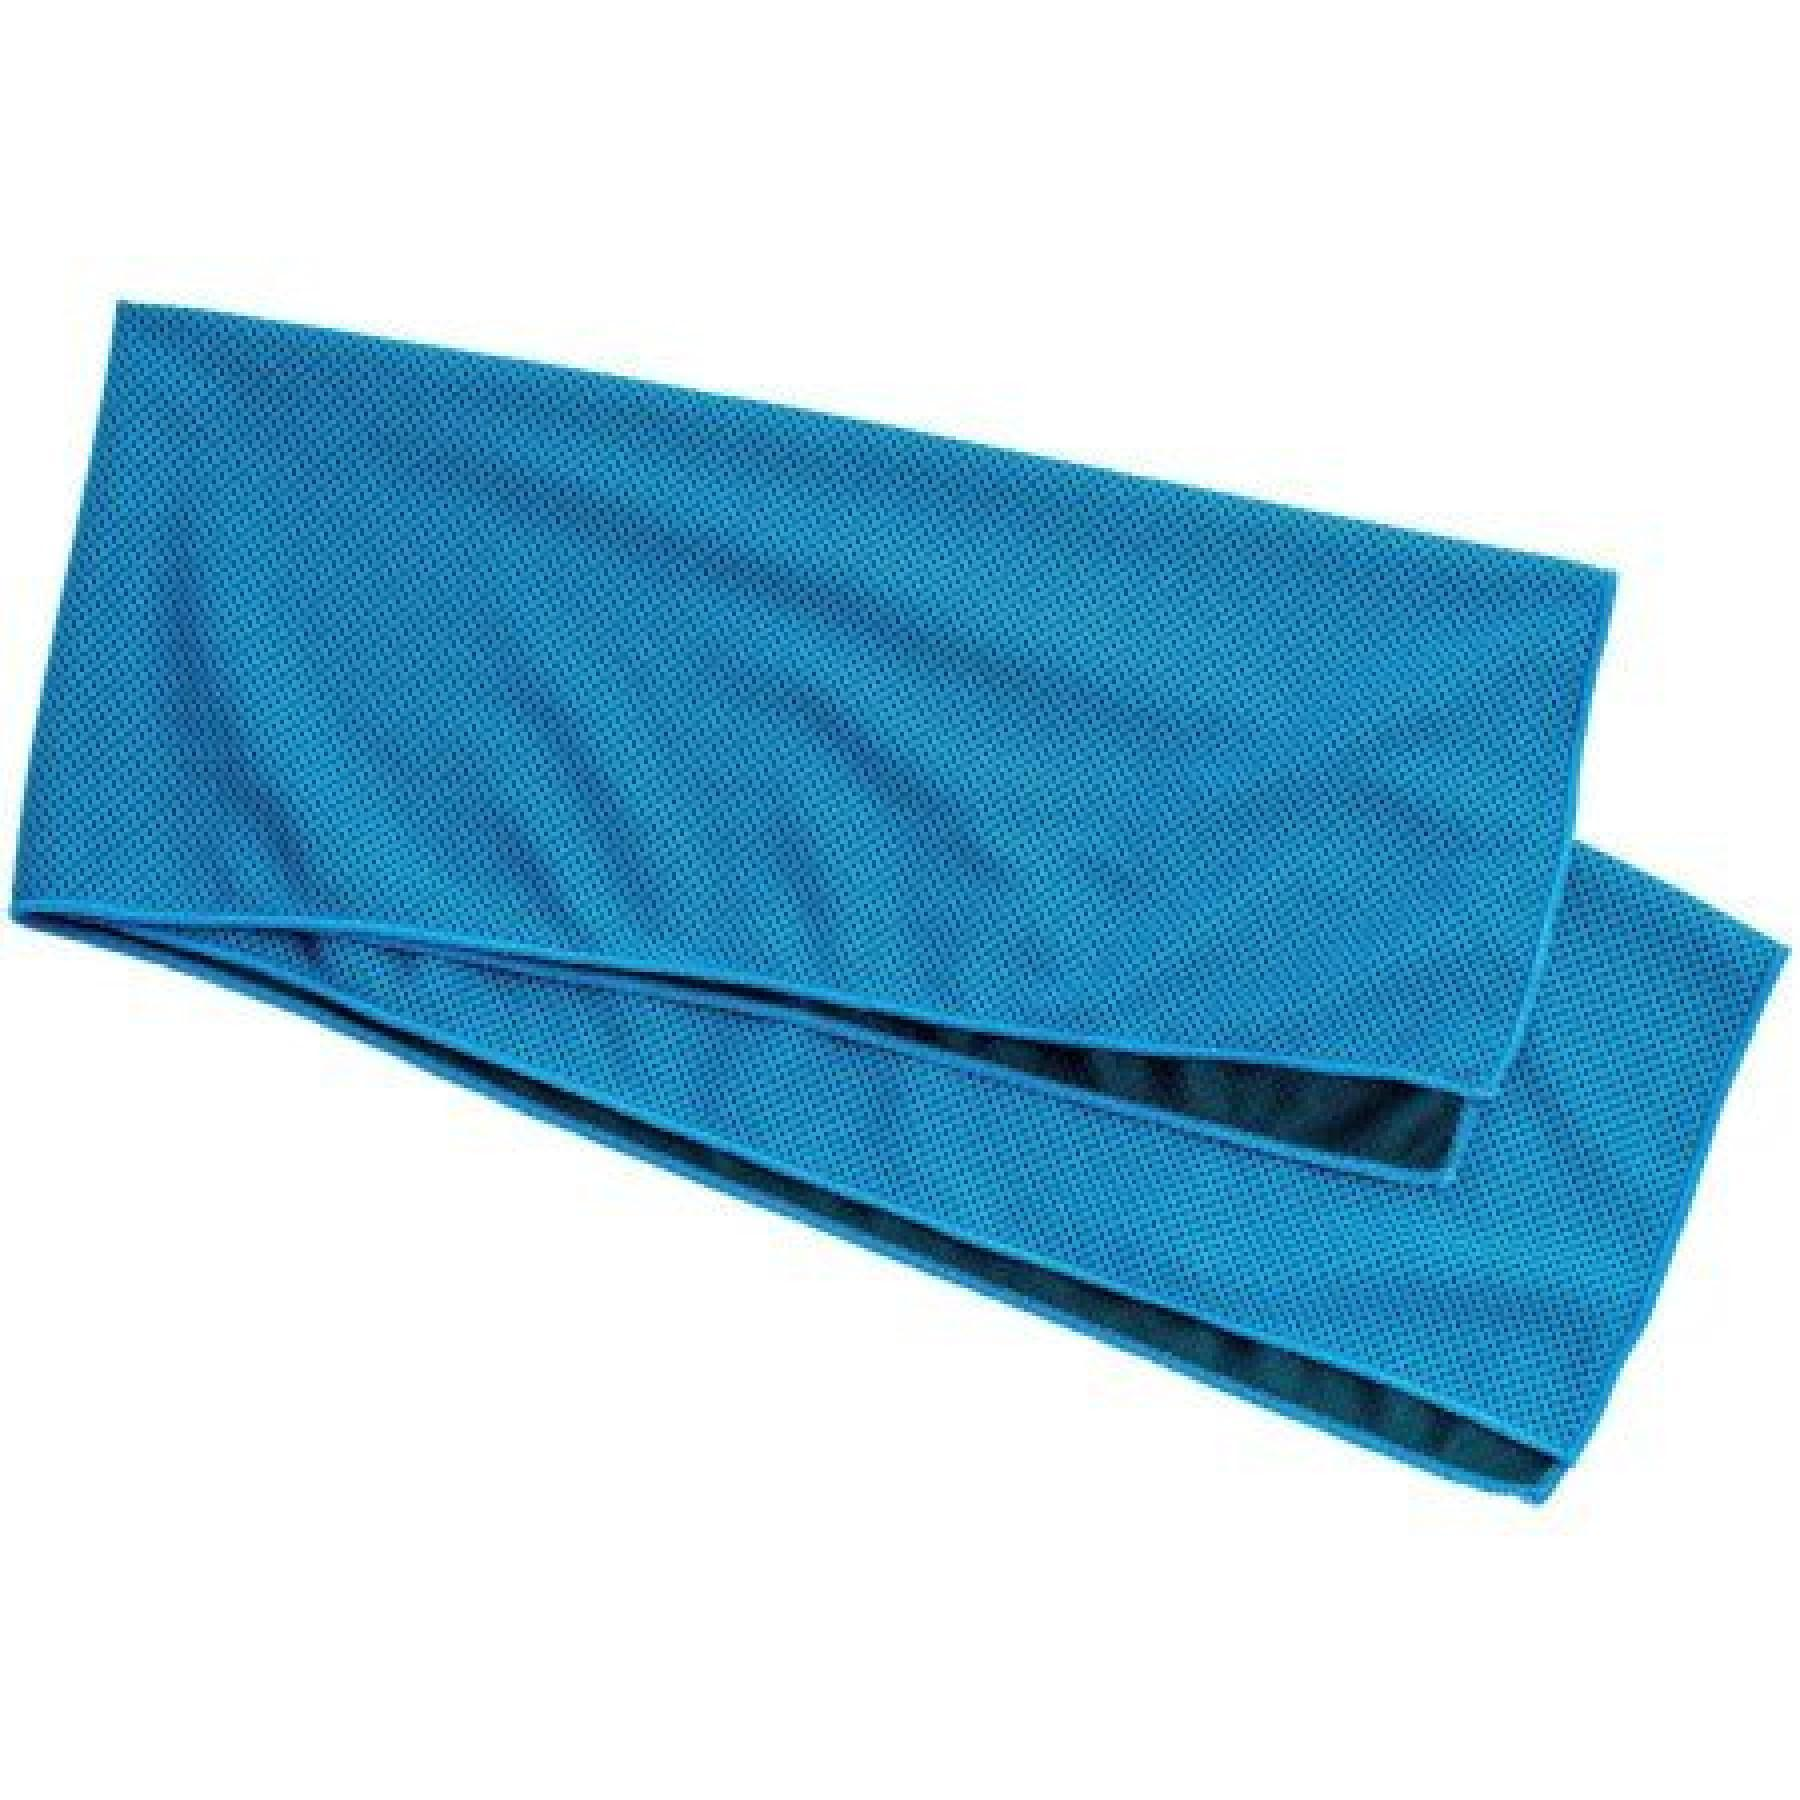 Towel Perfect Fitness Cooling Pro